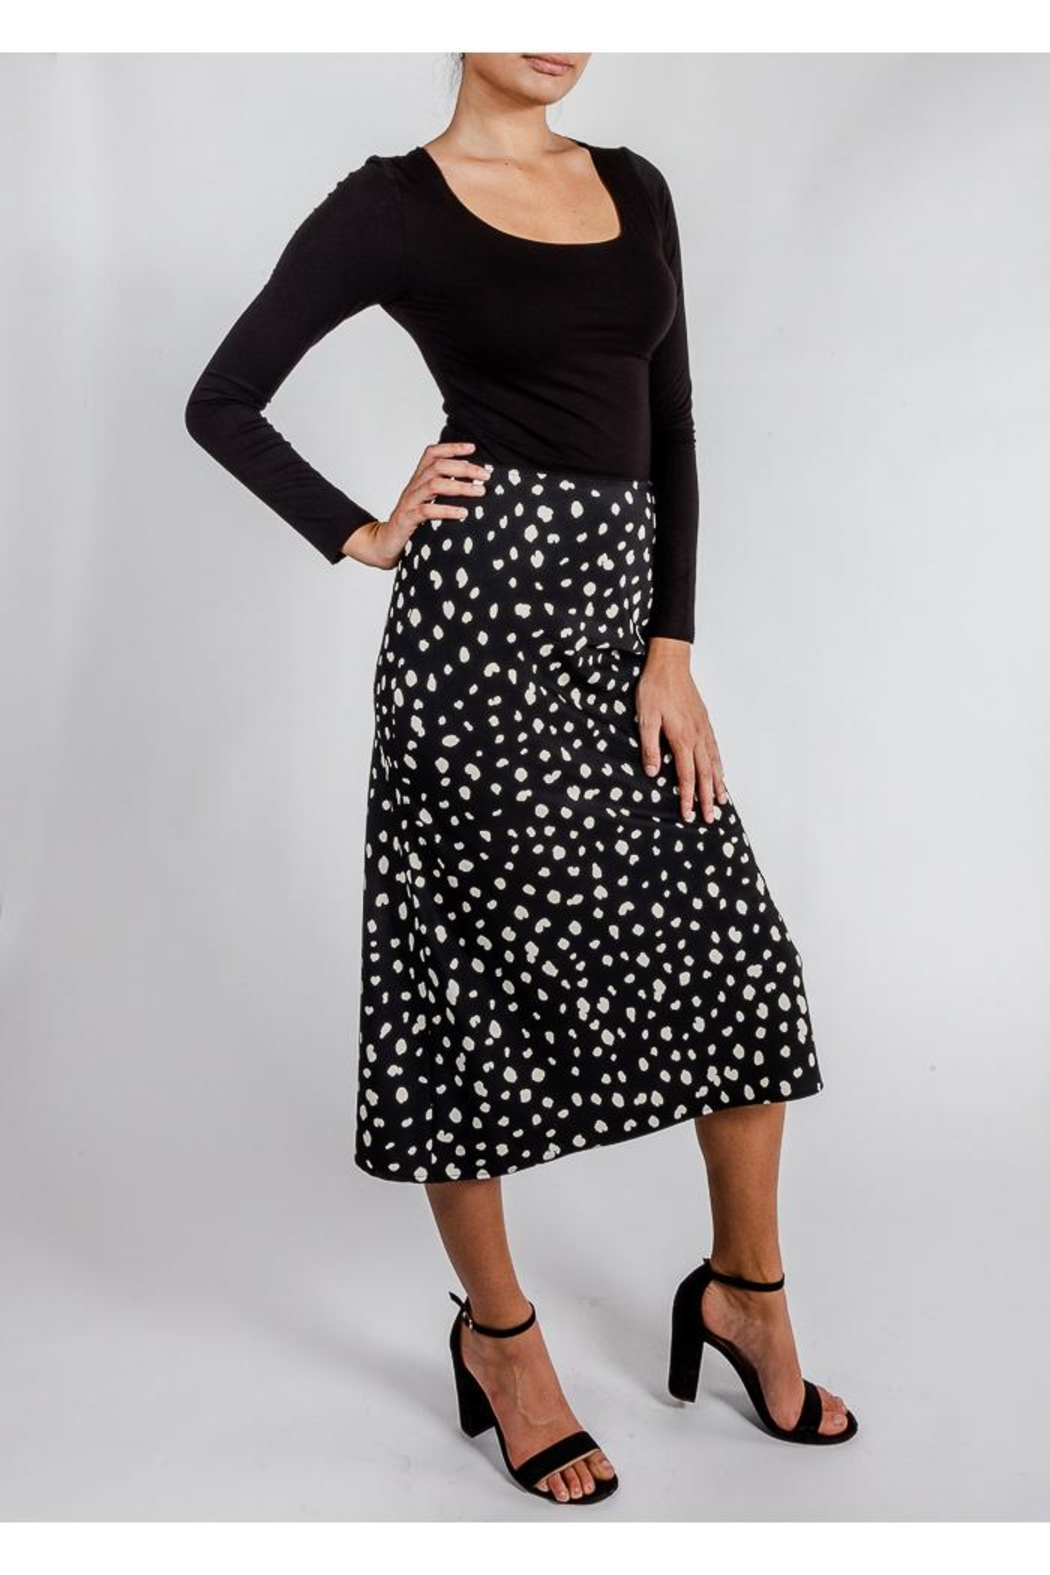 Audrey 3+1 Spots Slip Skirt - Side Cropped Image